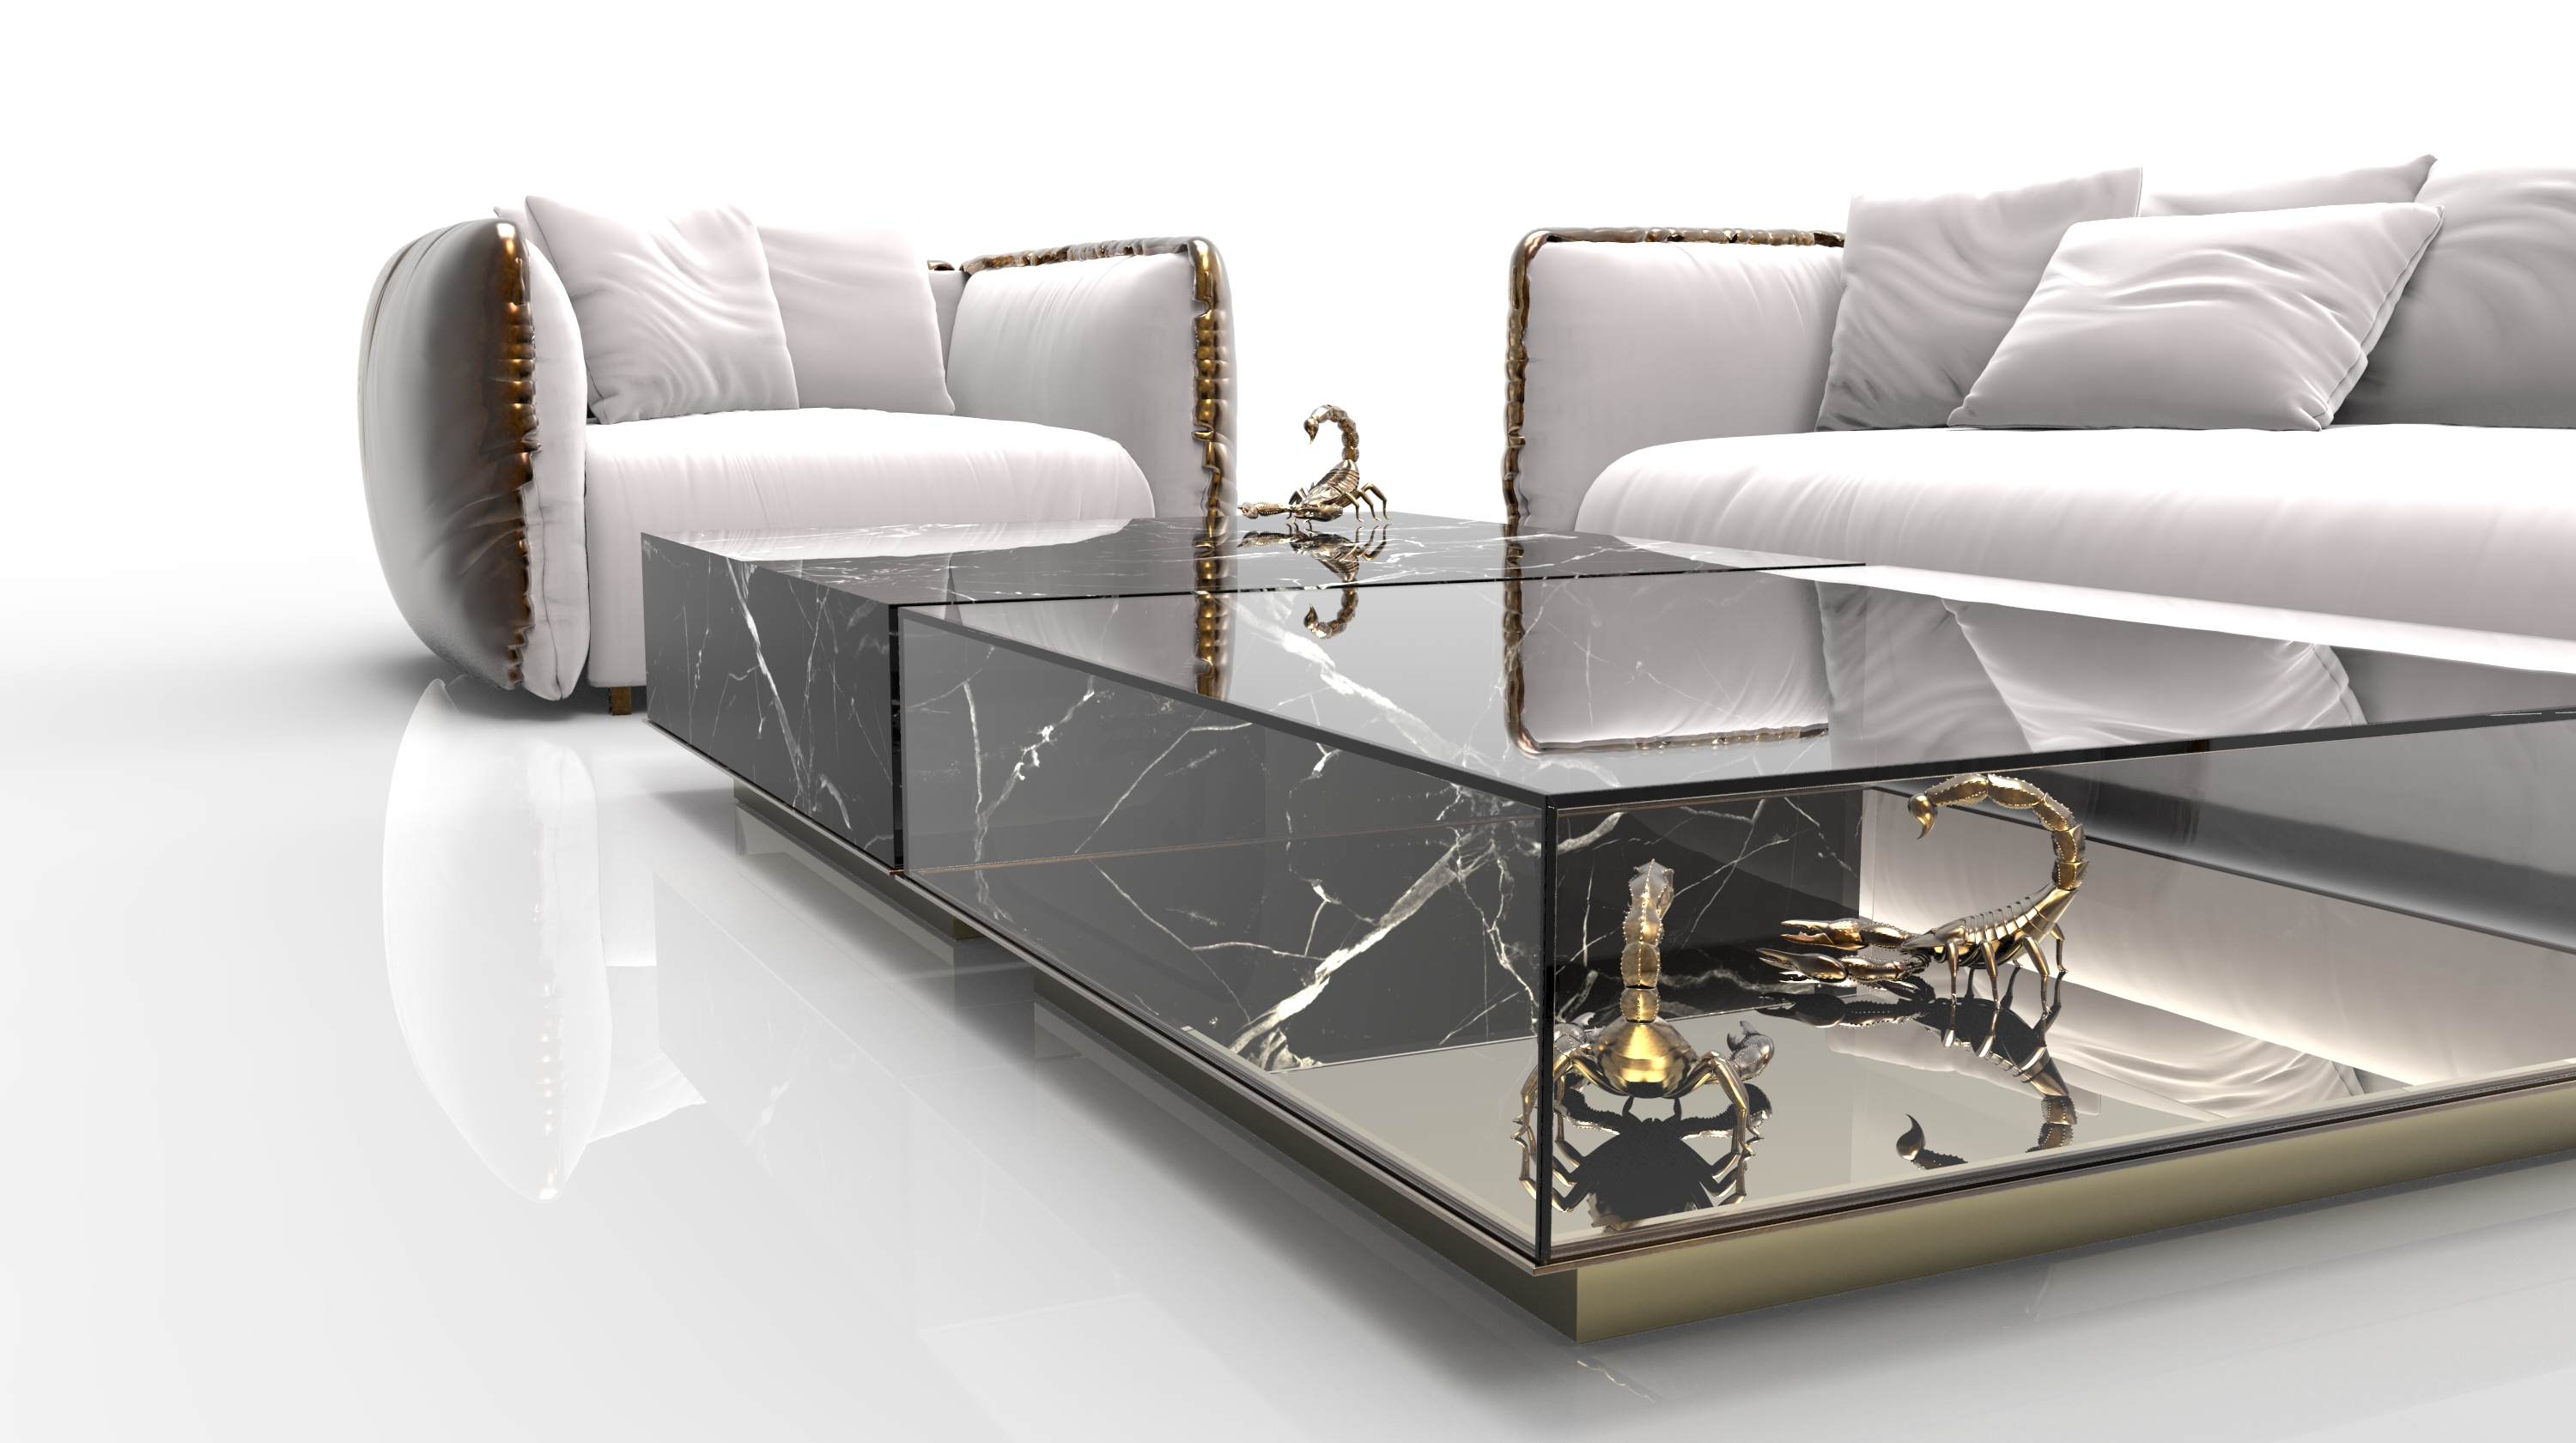 marble Marble Coffee and Side Table Designs On Home Interiors Metamorphosis Center Table 3